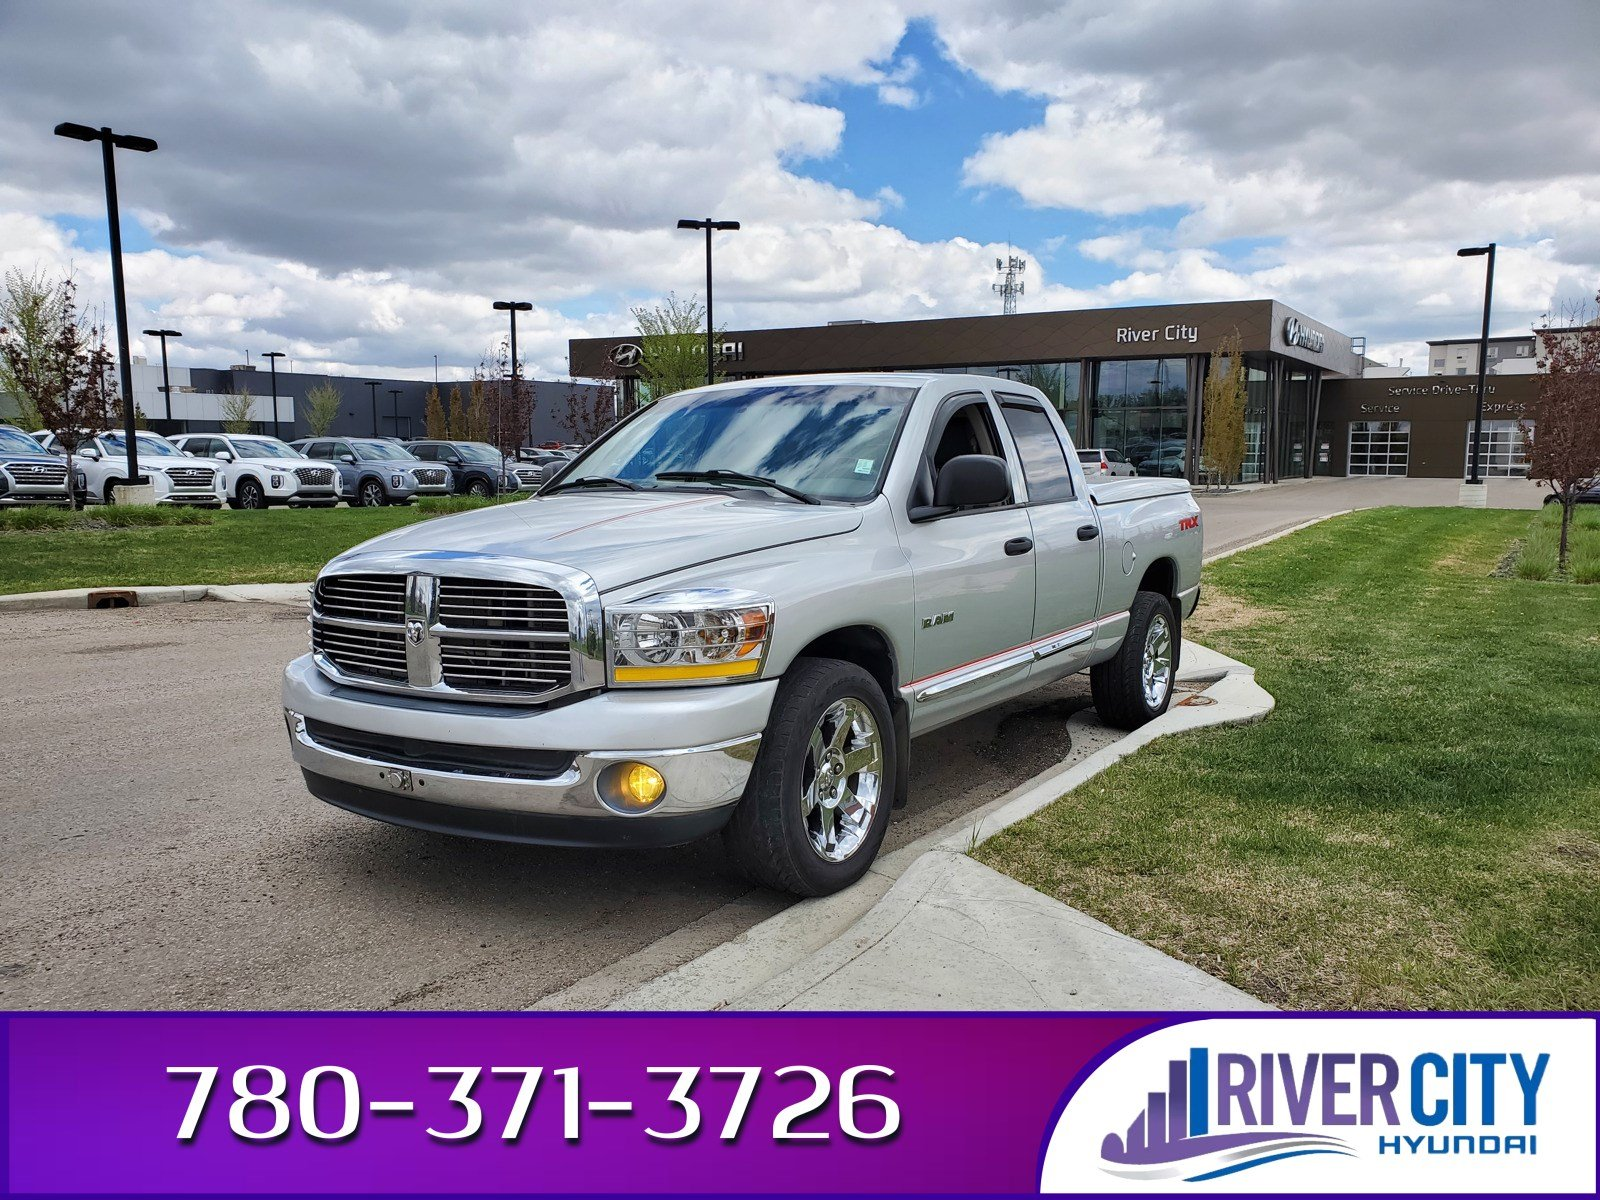 Pre-Owned 2008 Dodge Ram 1500 TRX Leather, Heated Seats, A/C,